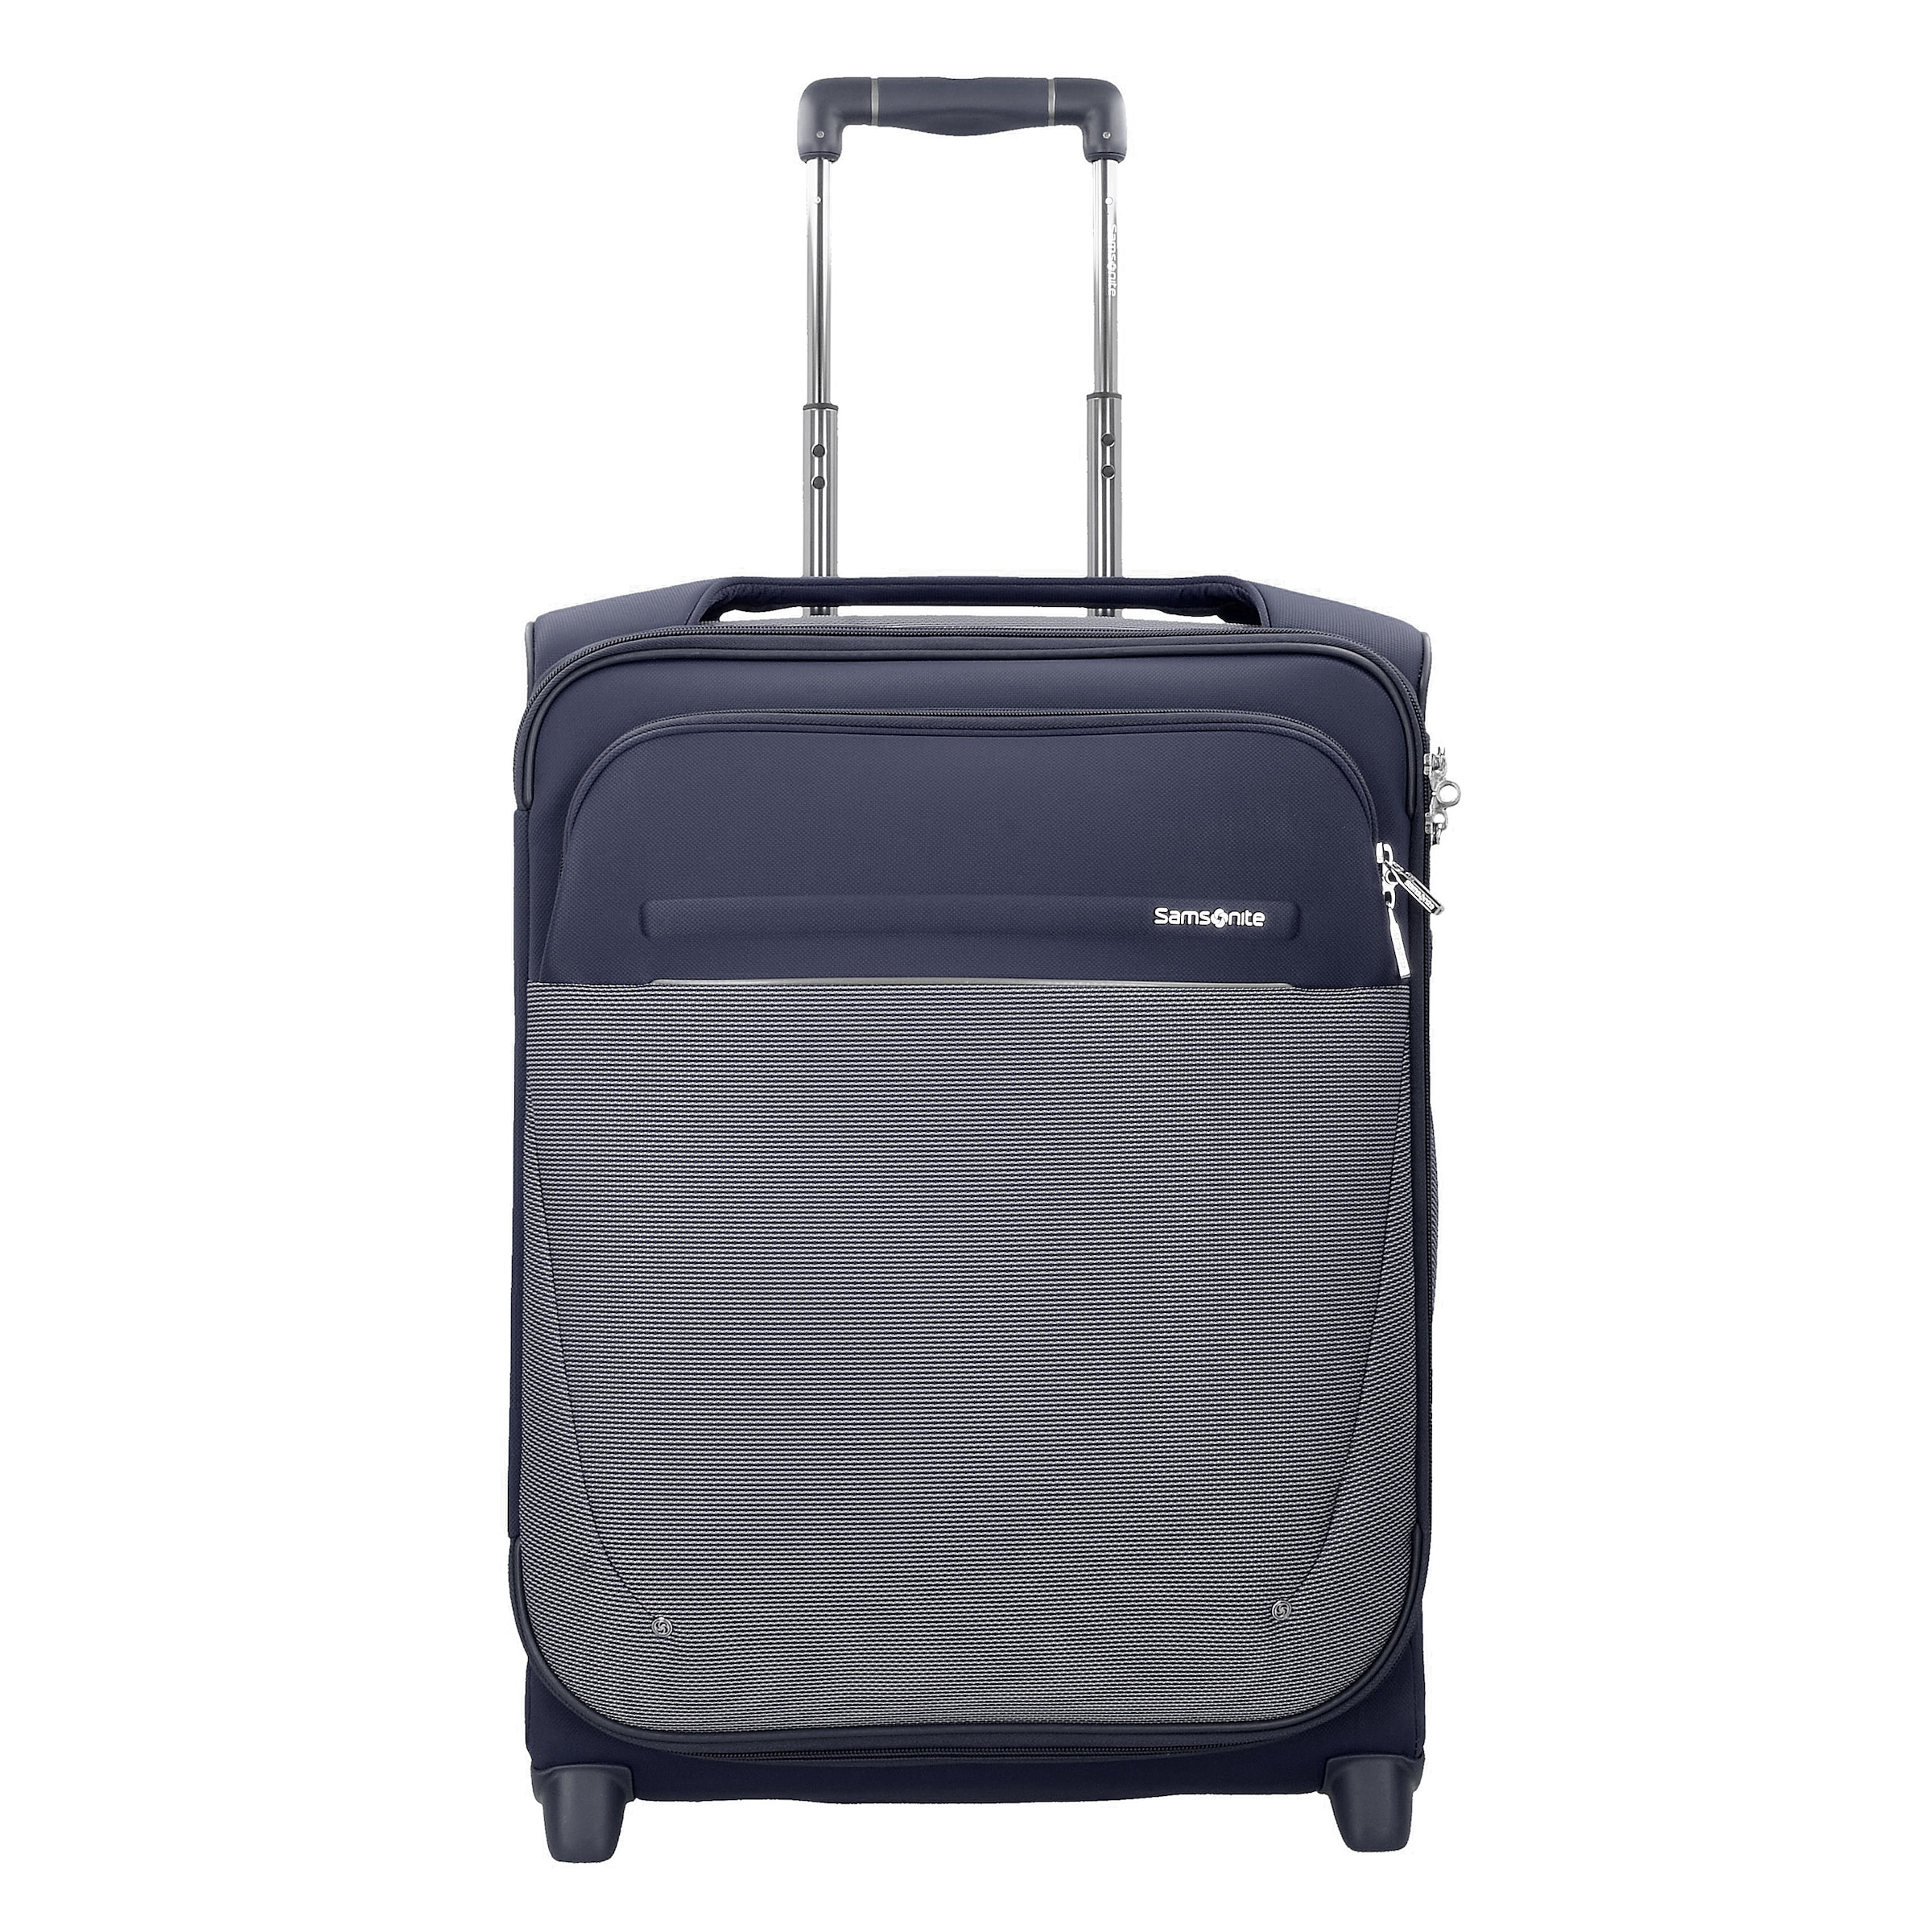 Kabinentrolley Samsonite Kabinentrolley Kabinentrolley In Kabinentrolley Dunkelblau In Samsonite Samsonite Dunkelblau In Samsonite In Dunkelblau SUVGqzMp